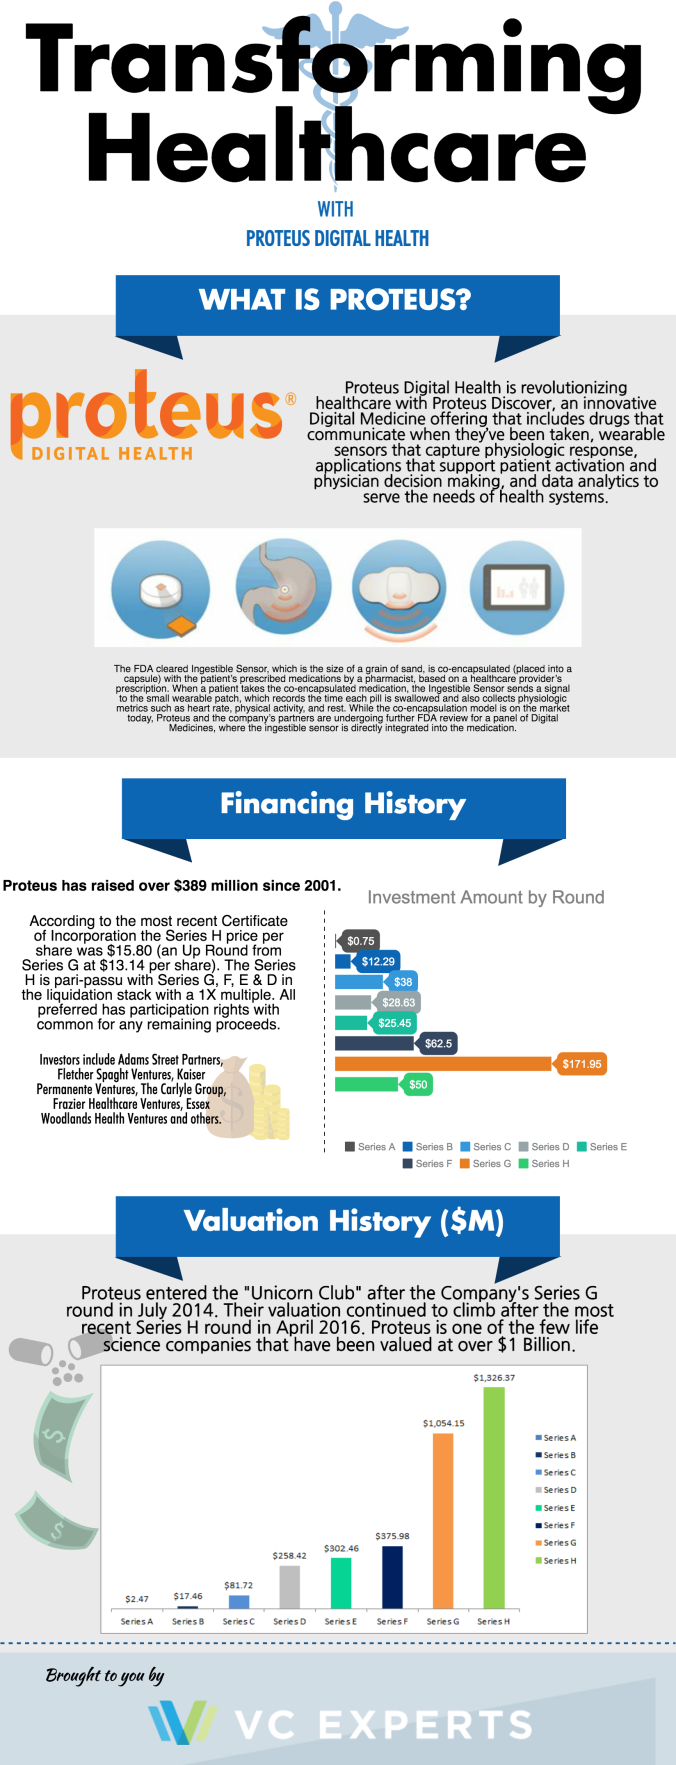 Proteus Digital Health Valuation and Investment Infographic